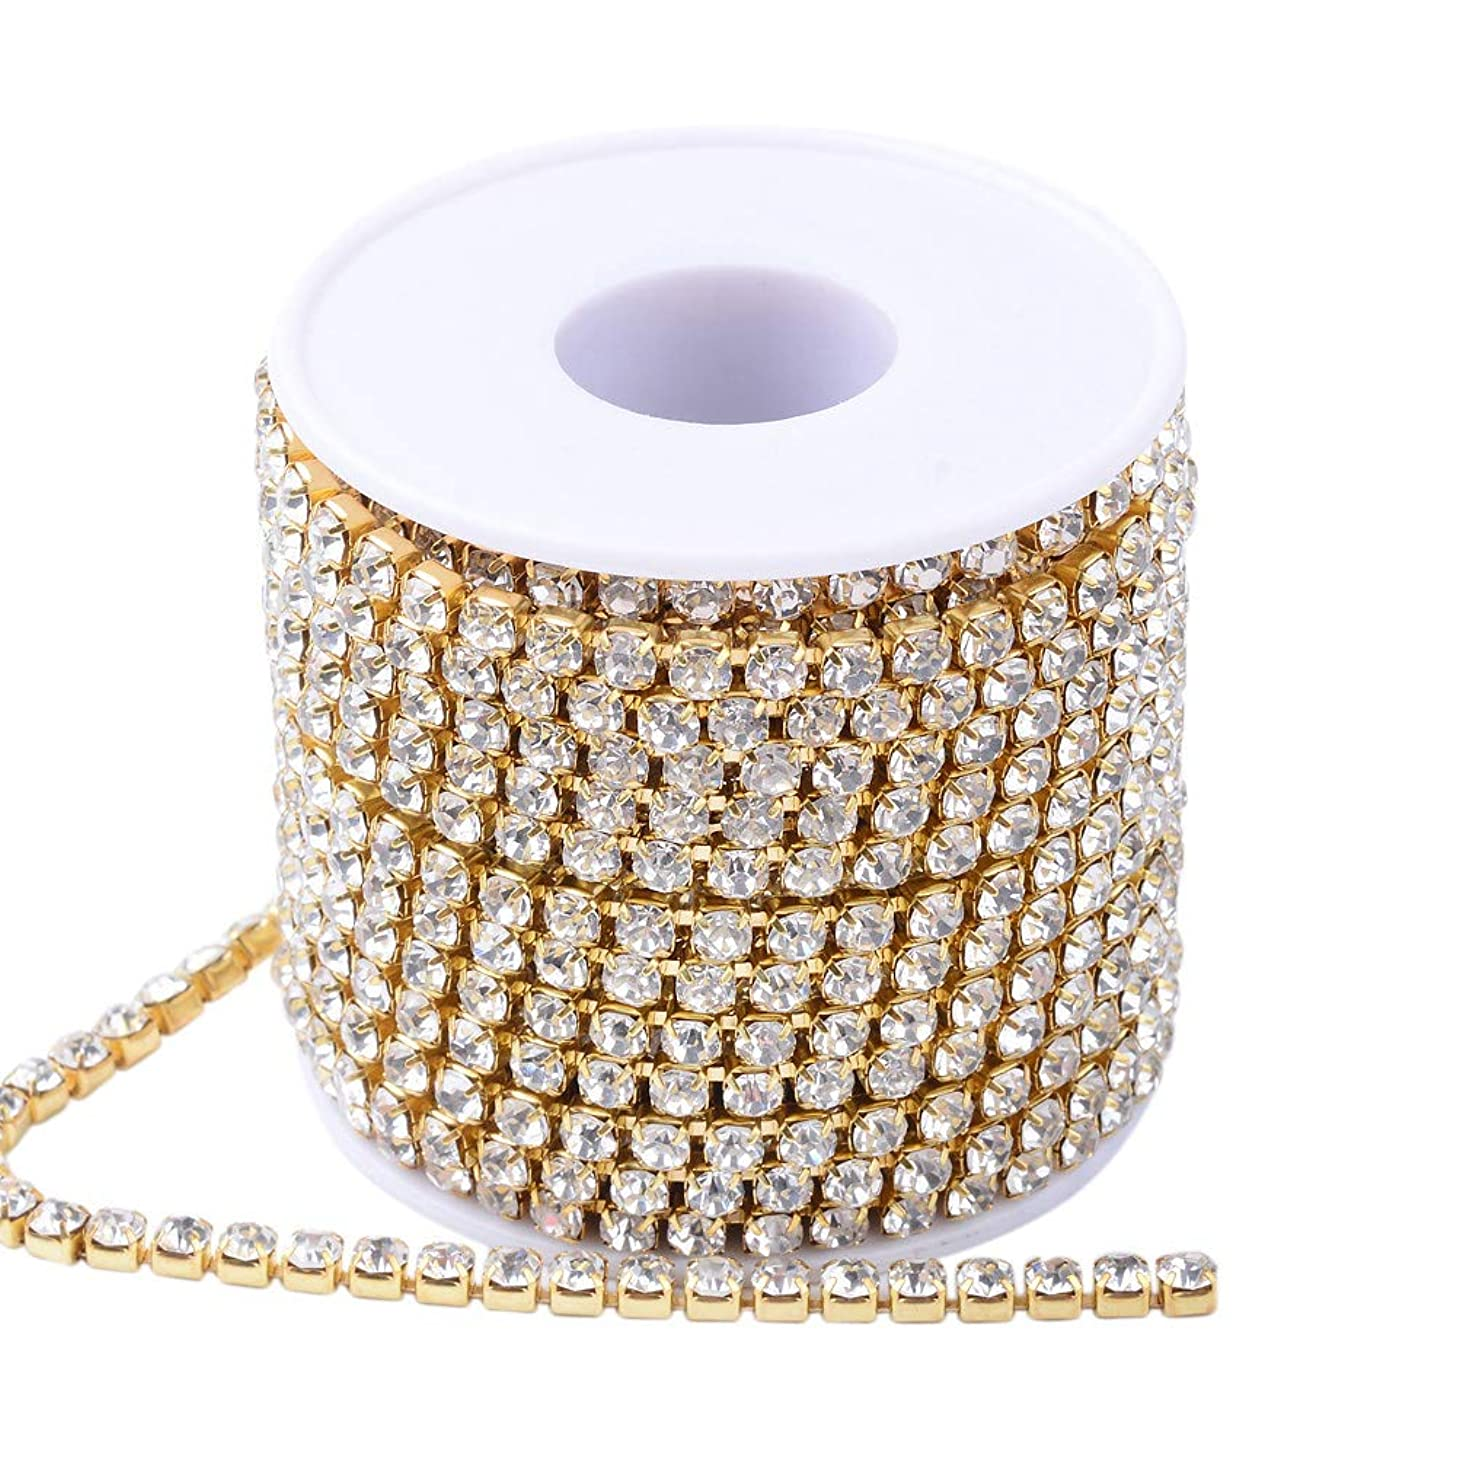 PH PandaHall 10 Yards Crystal Rhinestone Close Chain Clear Trimming Claw Chain Sewing Craft About 1960pcs Rhinestones, 4mm- Crystal (Brass Bottom)